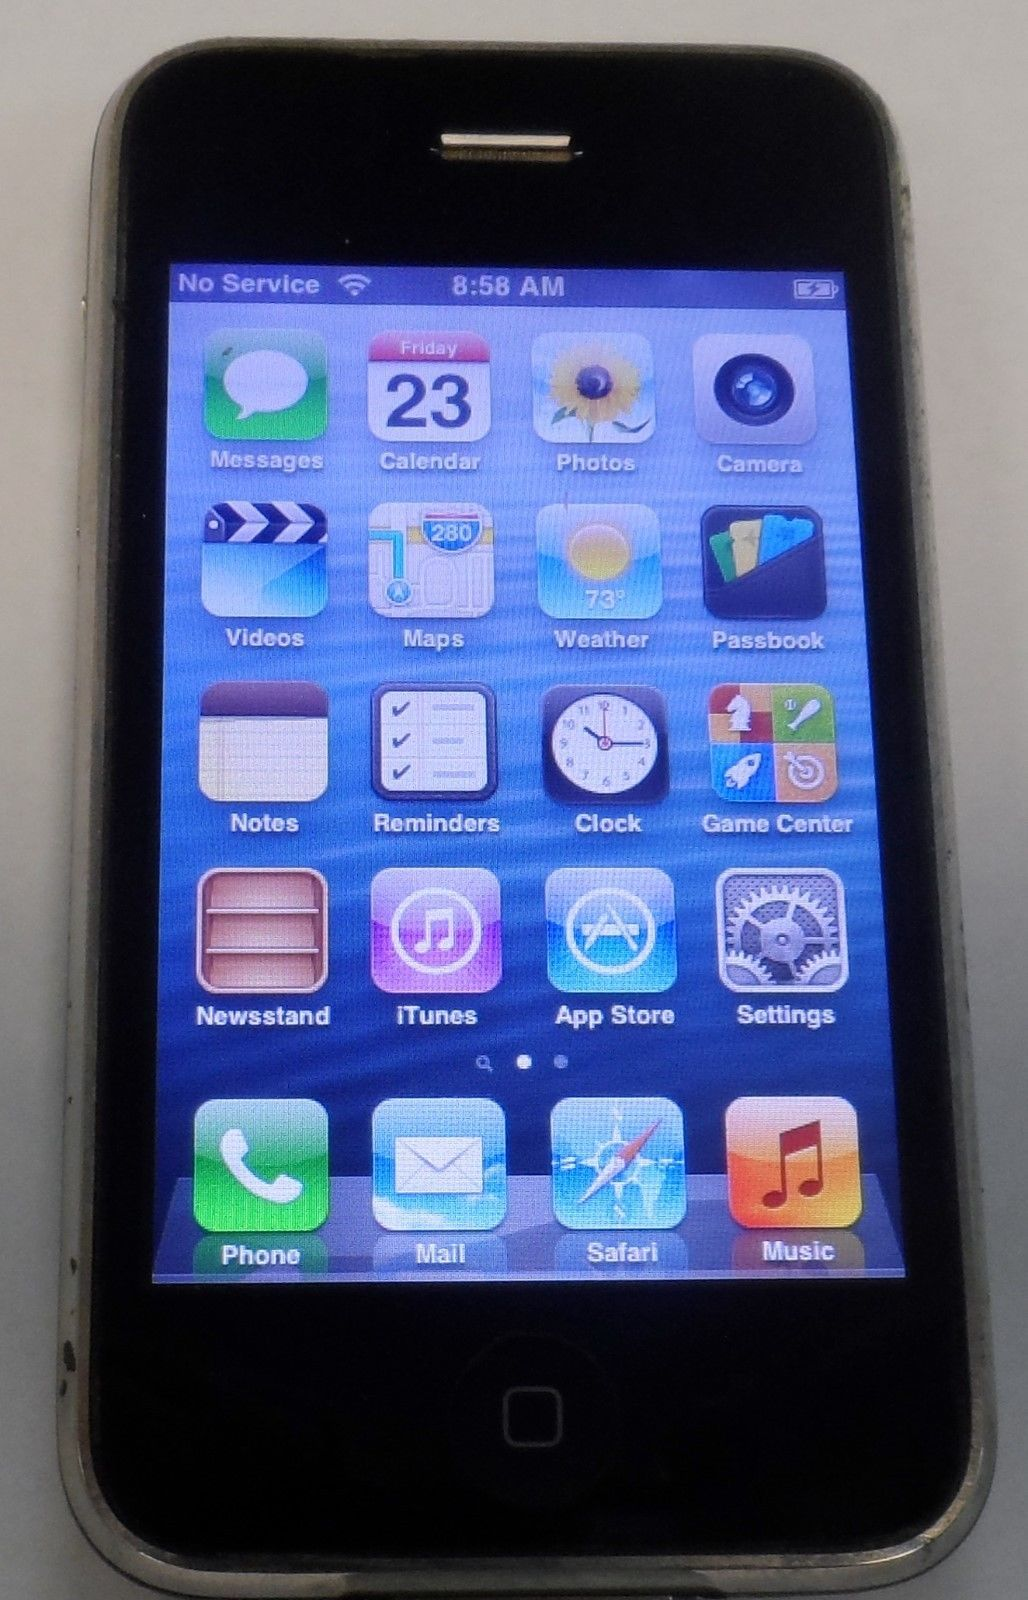 Iphone 3gs Apple Iphone 3gs 8gb Black At T Smartphone Mc640ll A